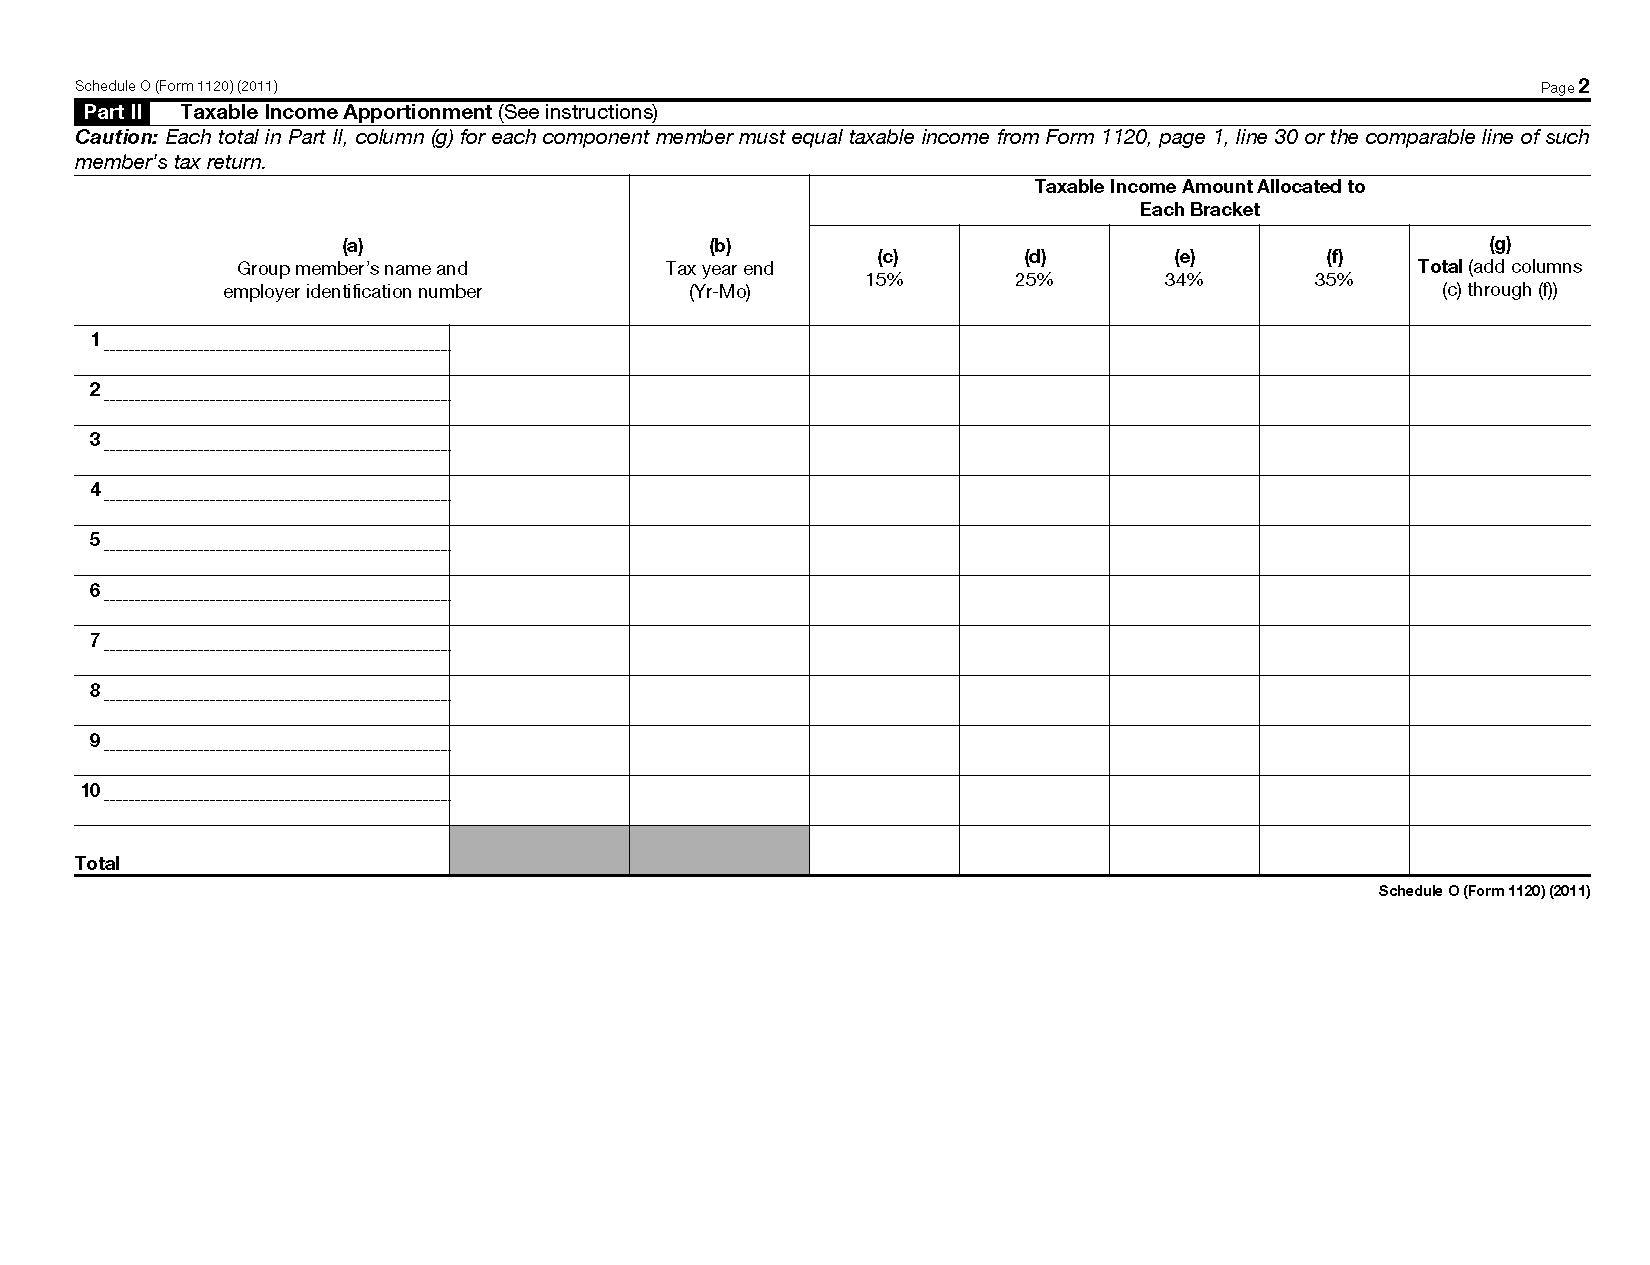 Form 1120 (Schedule O) Consent Plan and Apportionment ...